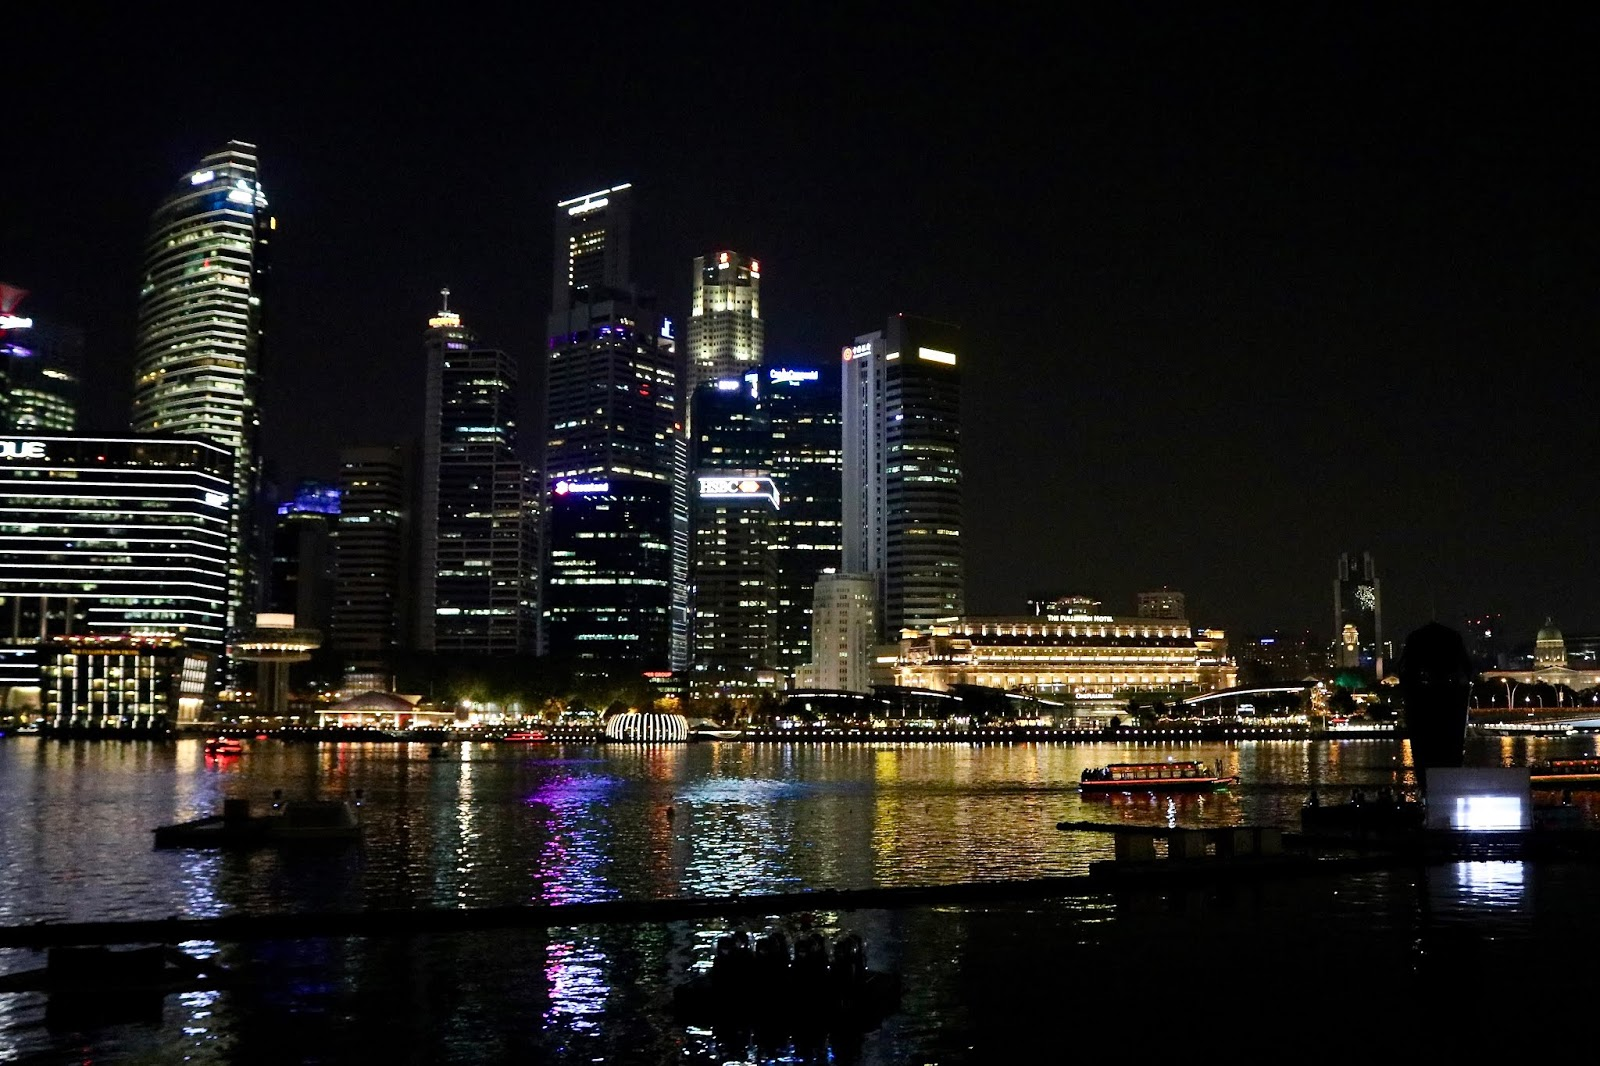 Waterfront Promenade, Singapore